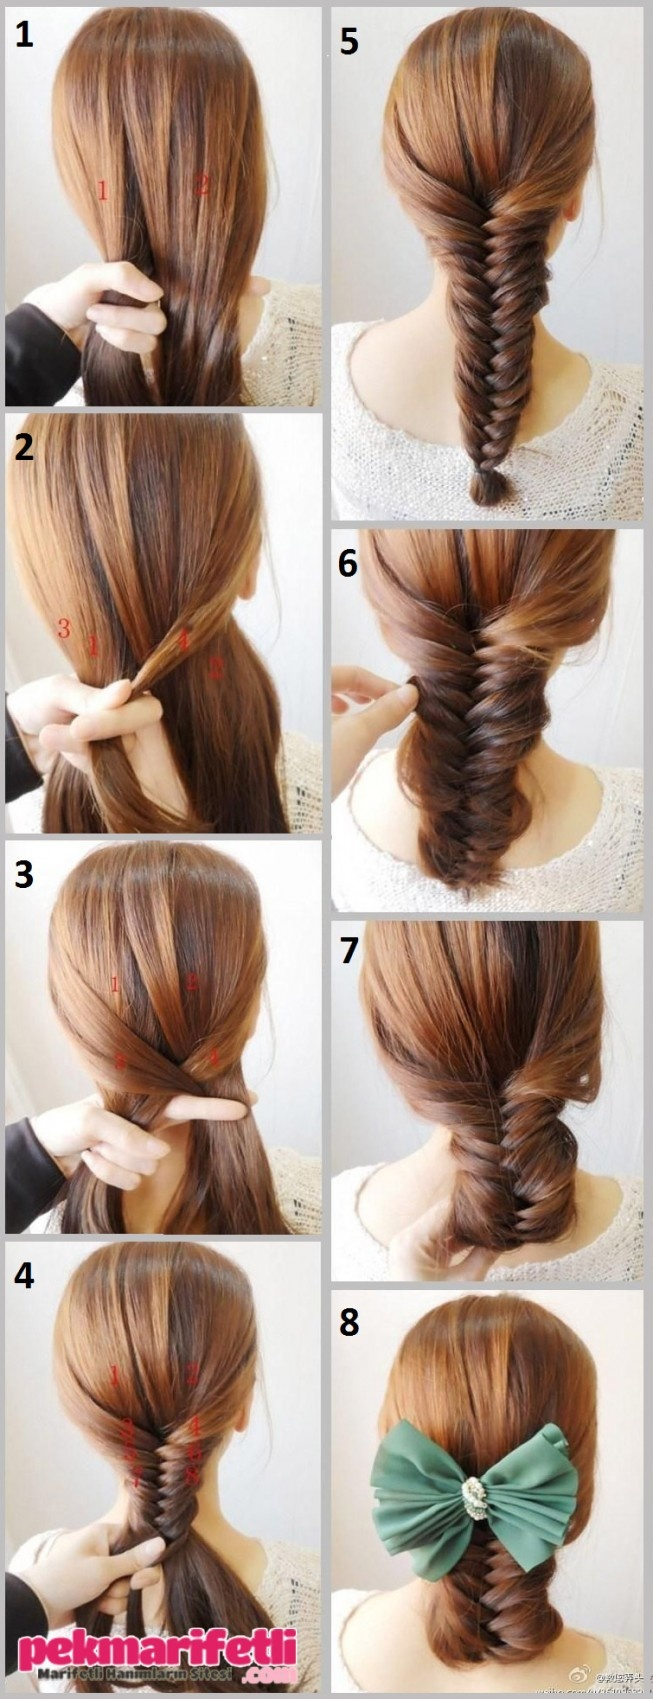 10 quick and easy hairstyles step by step the learnify -  Rg L Topuz Yap M